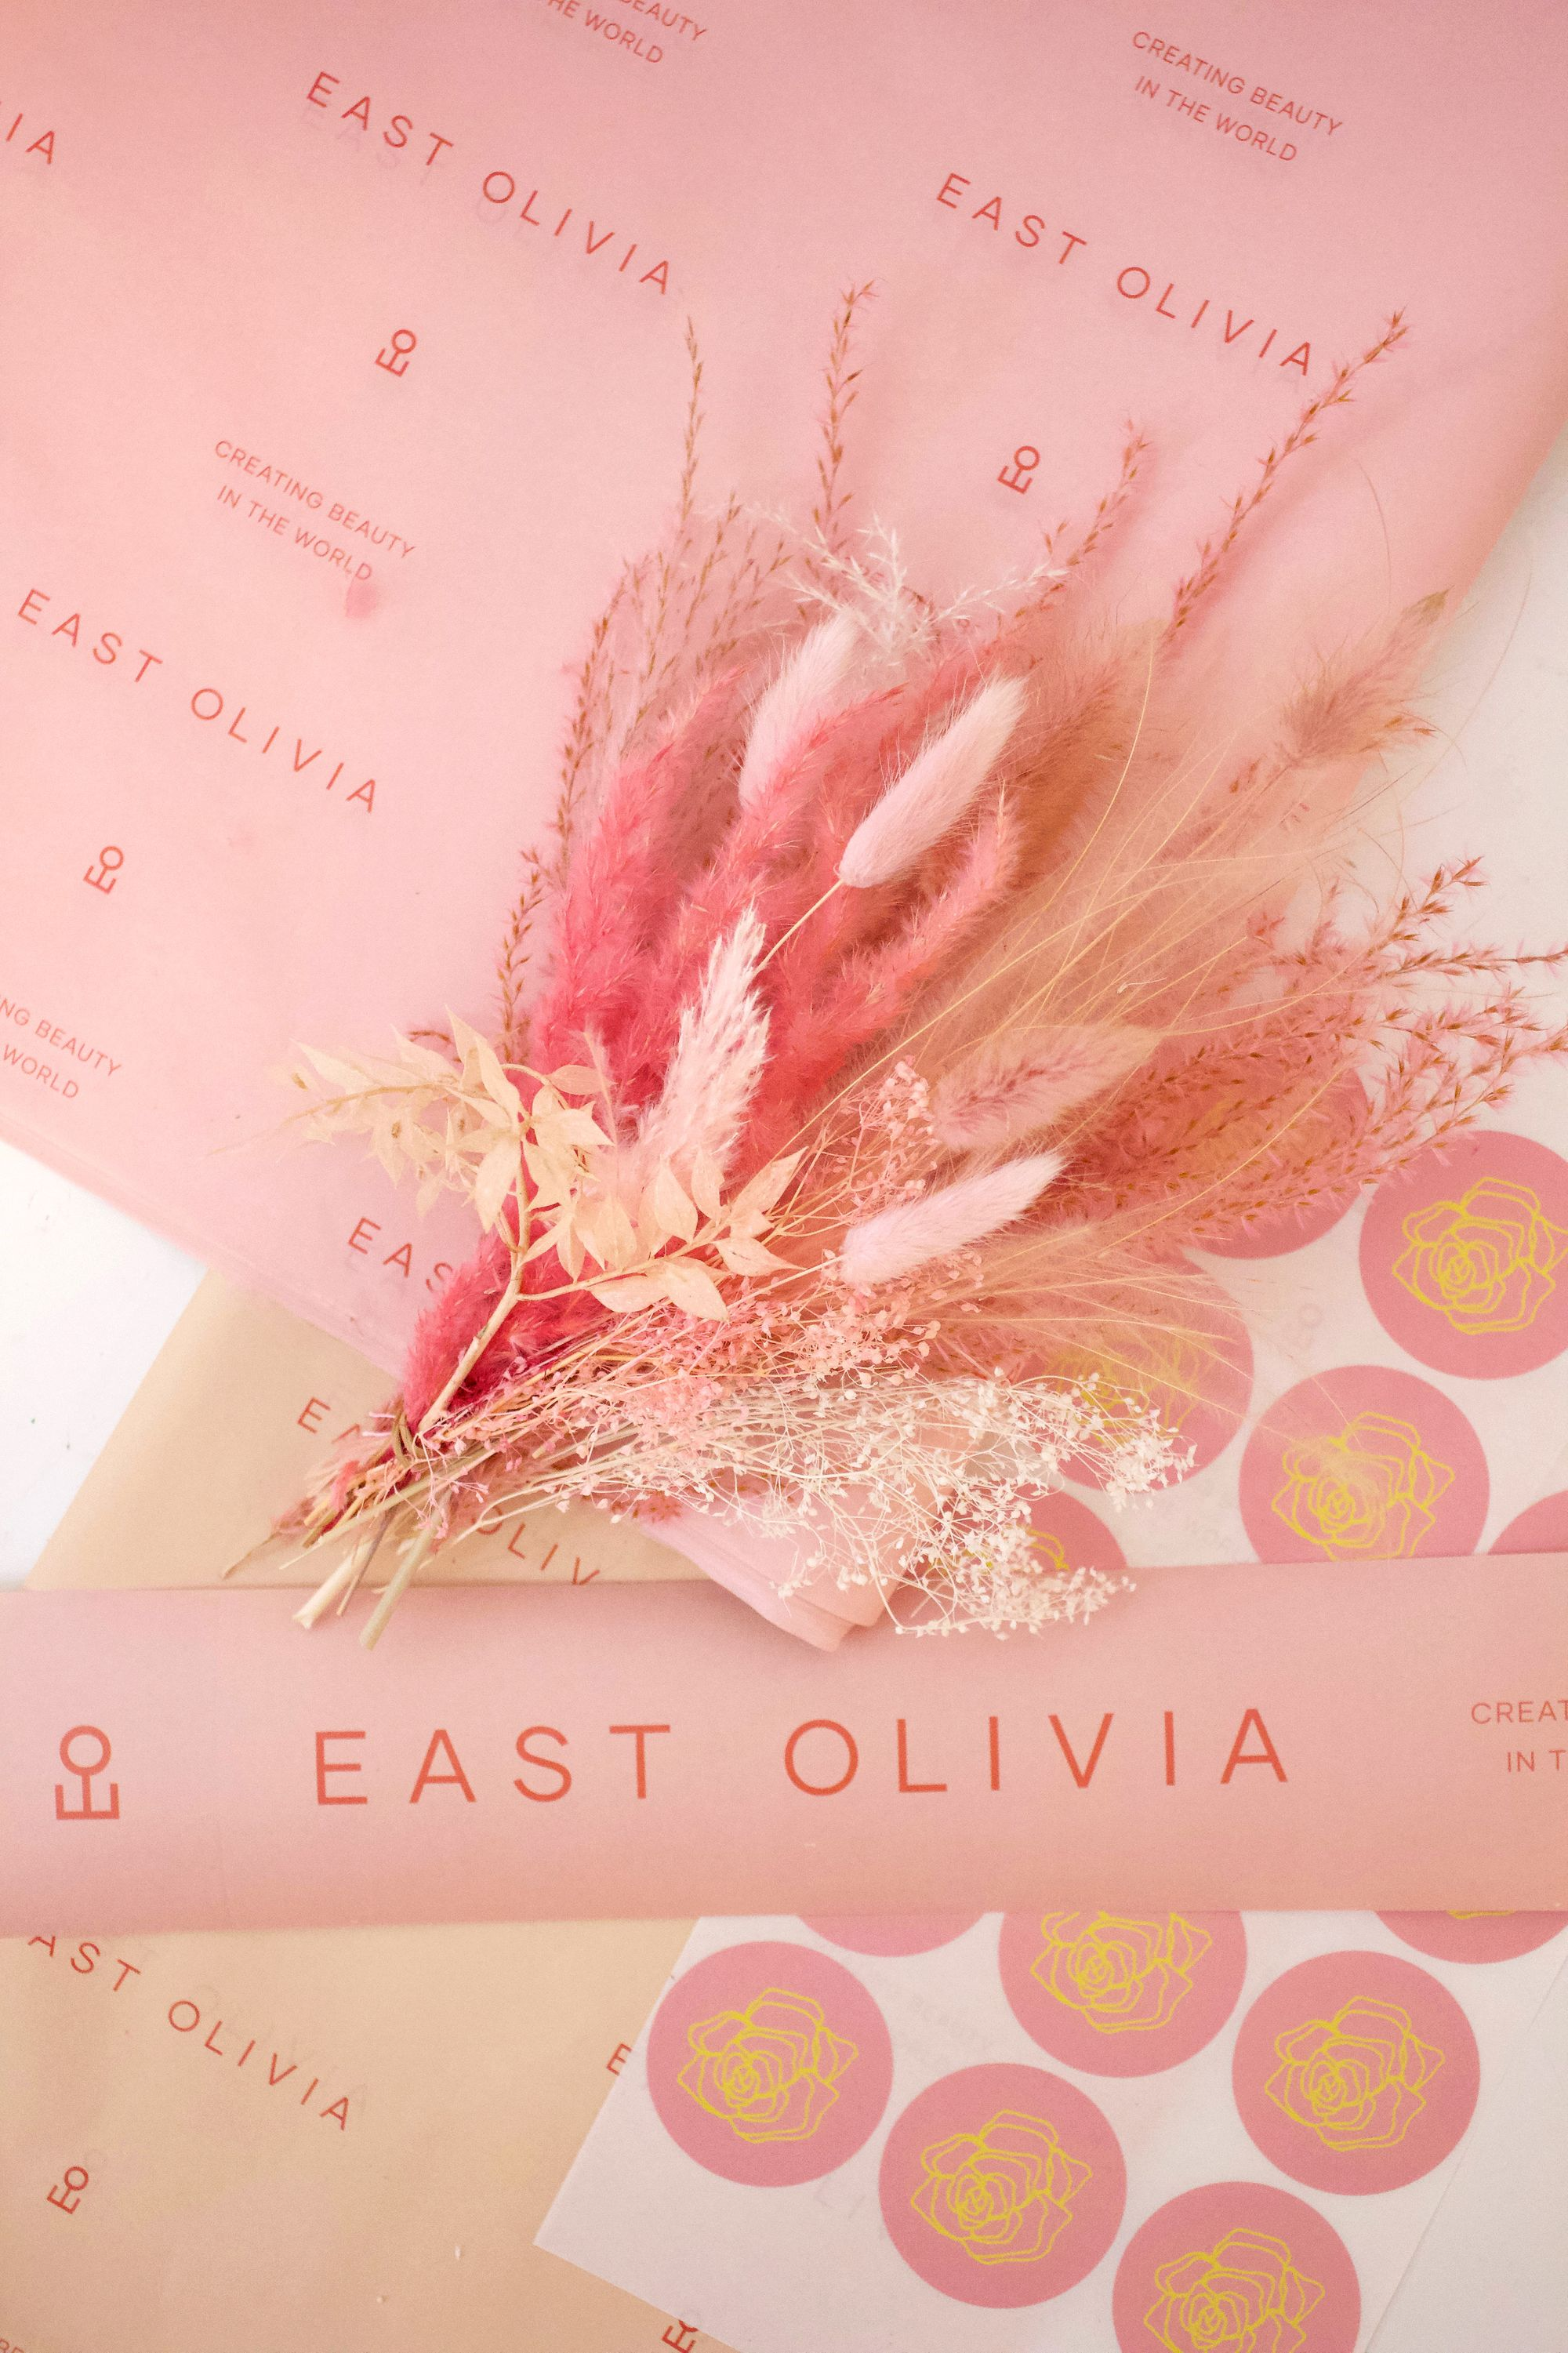 How East Olivia Creates Beauty in the World through Flowers